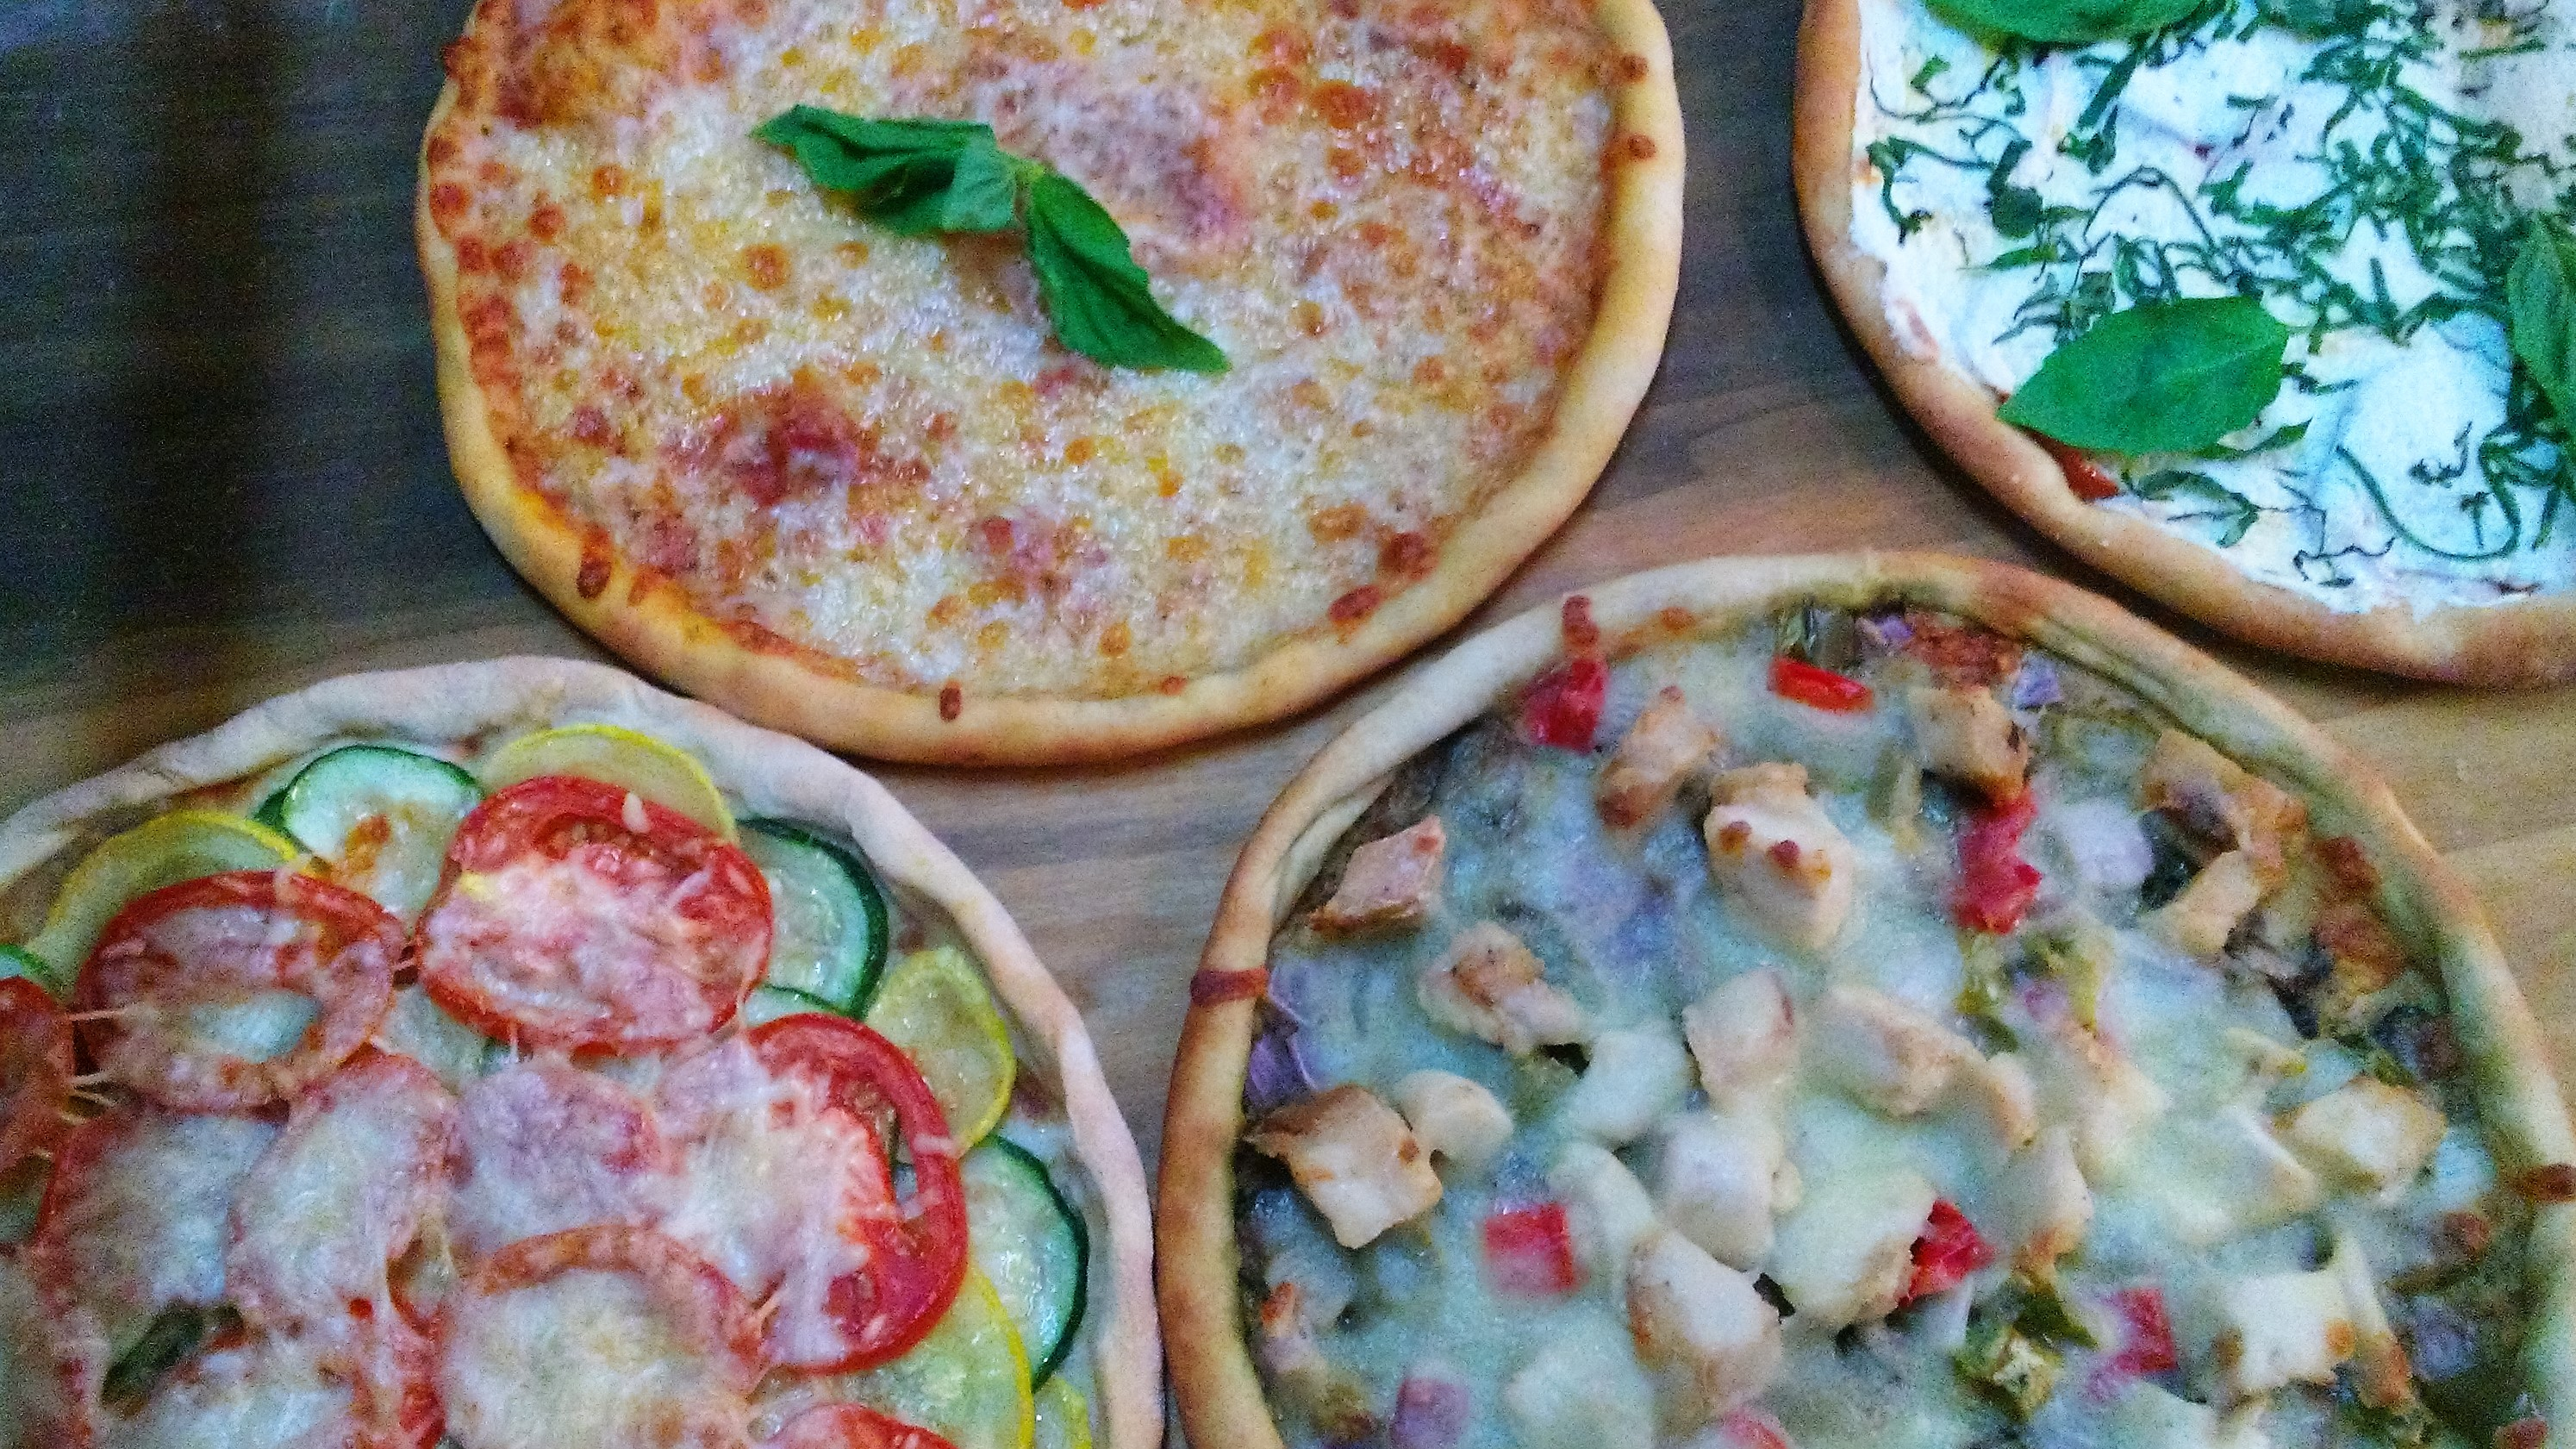 Savory and Sweet Gourmet Pizza!